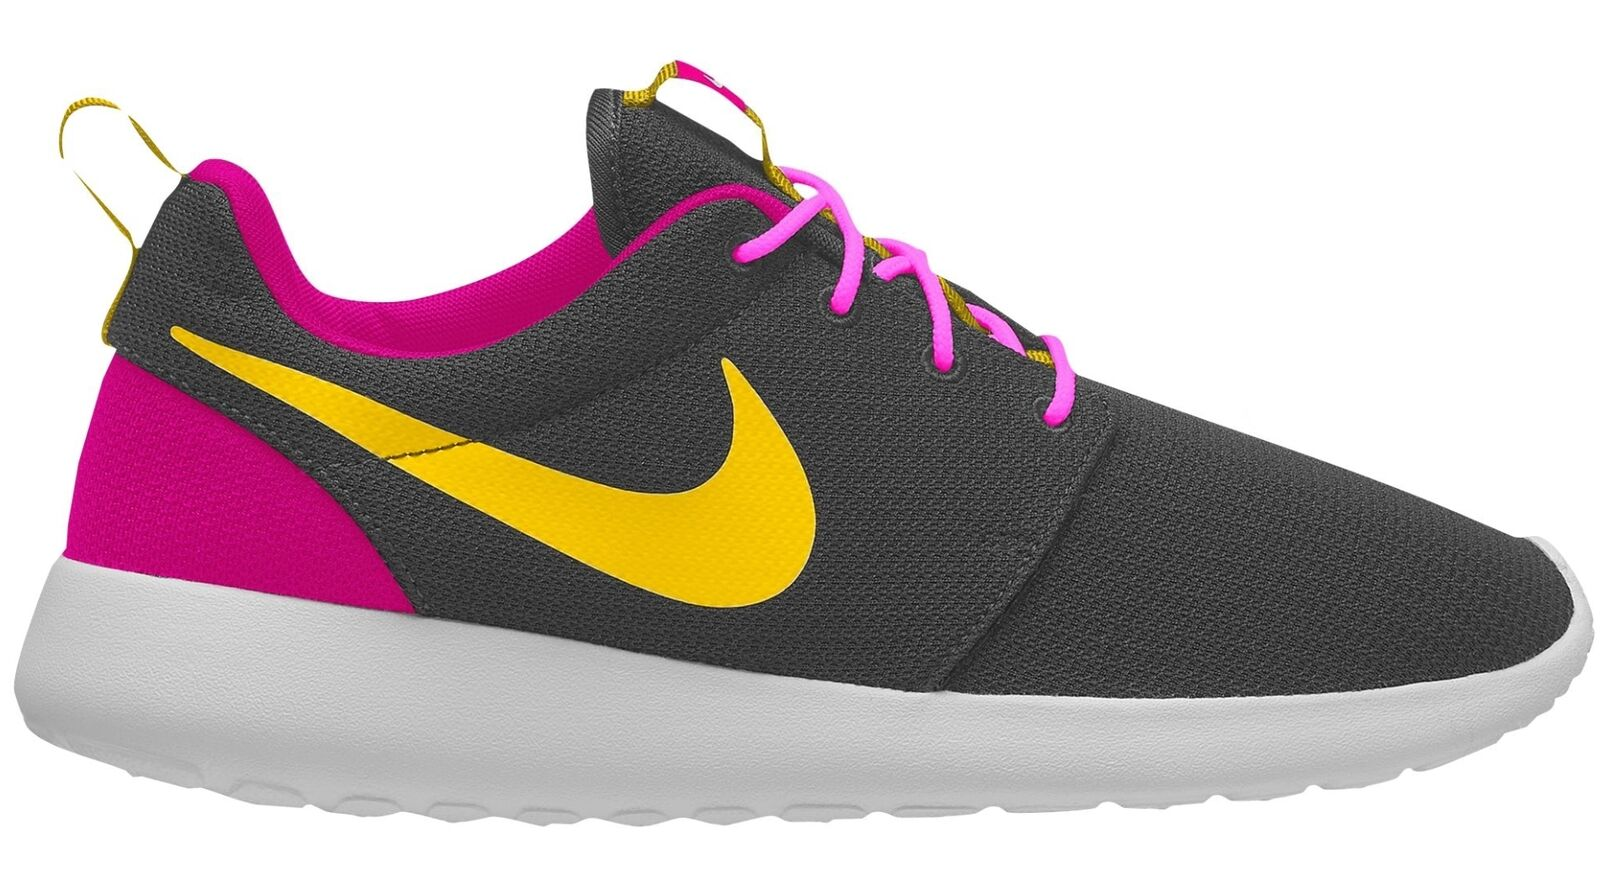 Nike Roshe One Mens 511881-035 Anthracite Magenta Yellow Running Shoes Comfortable Special limited time